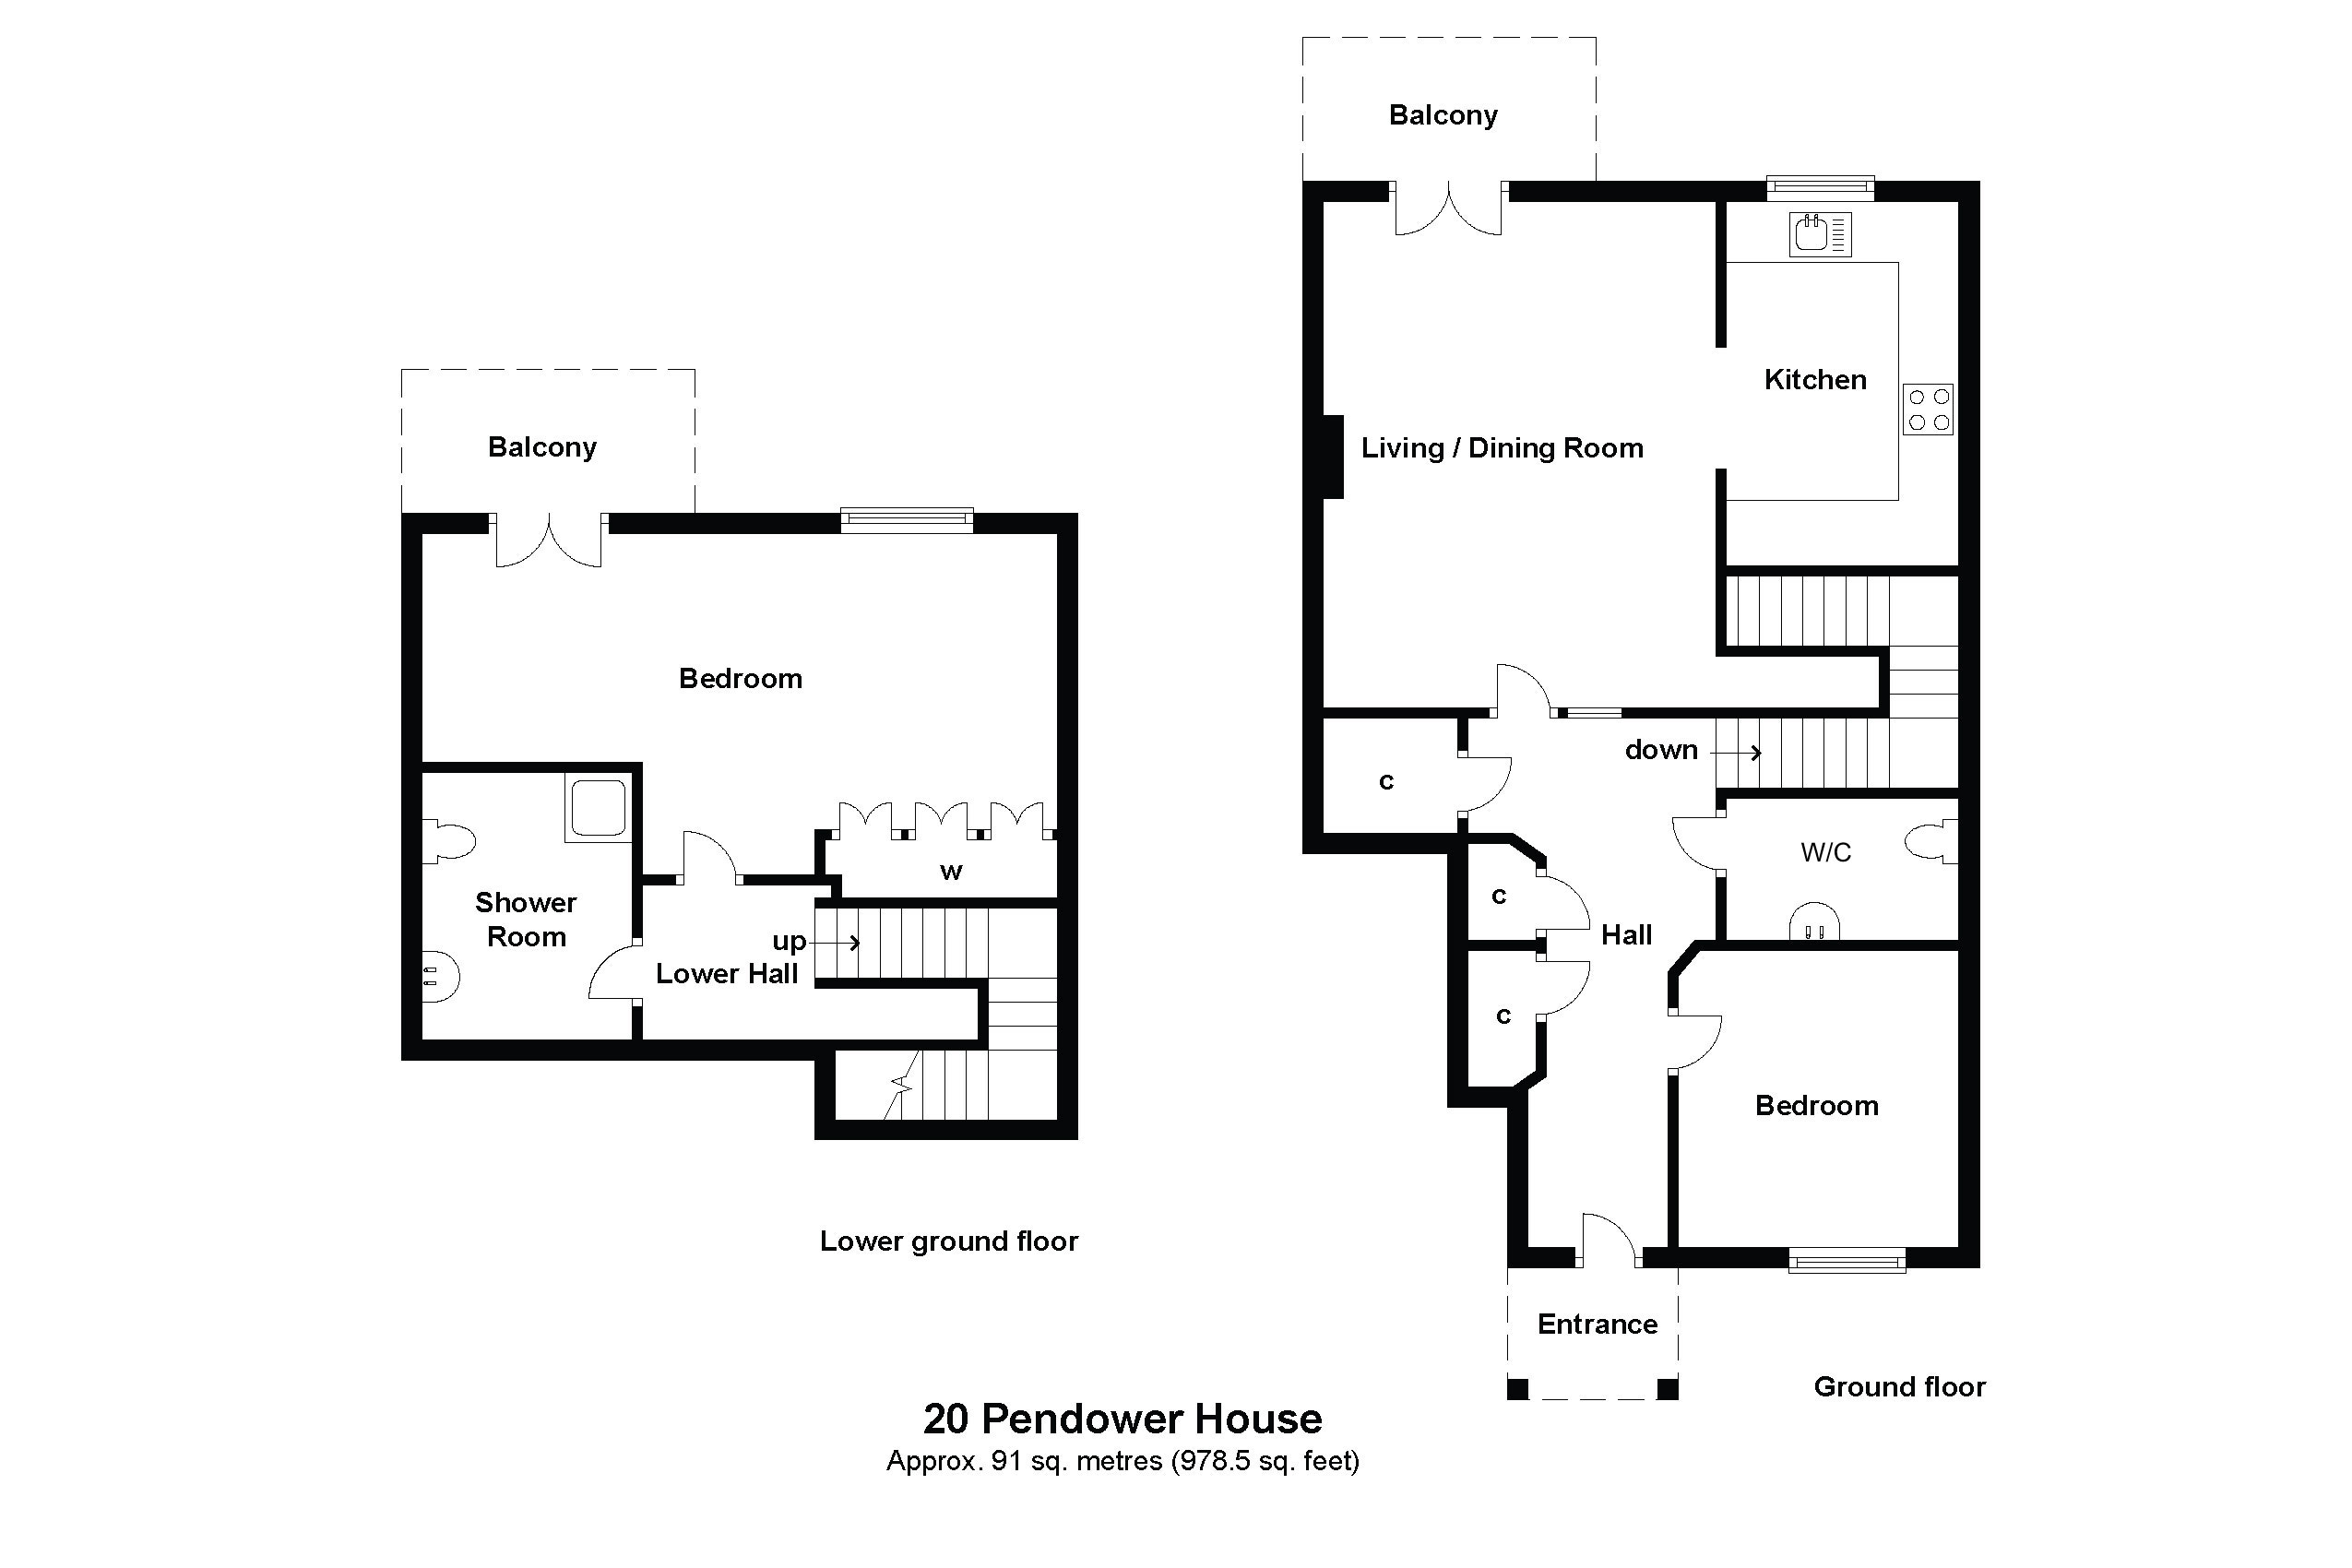 20 Pendower House Floorplan